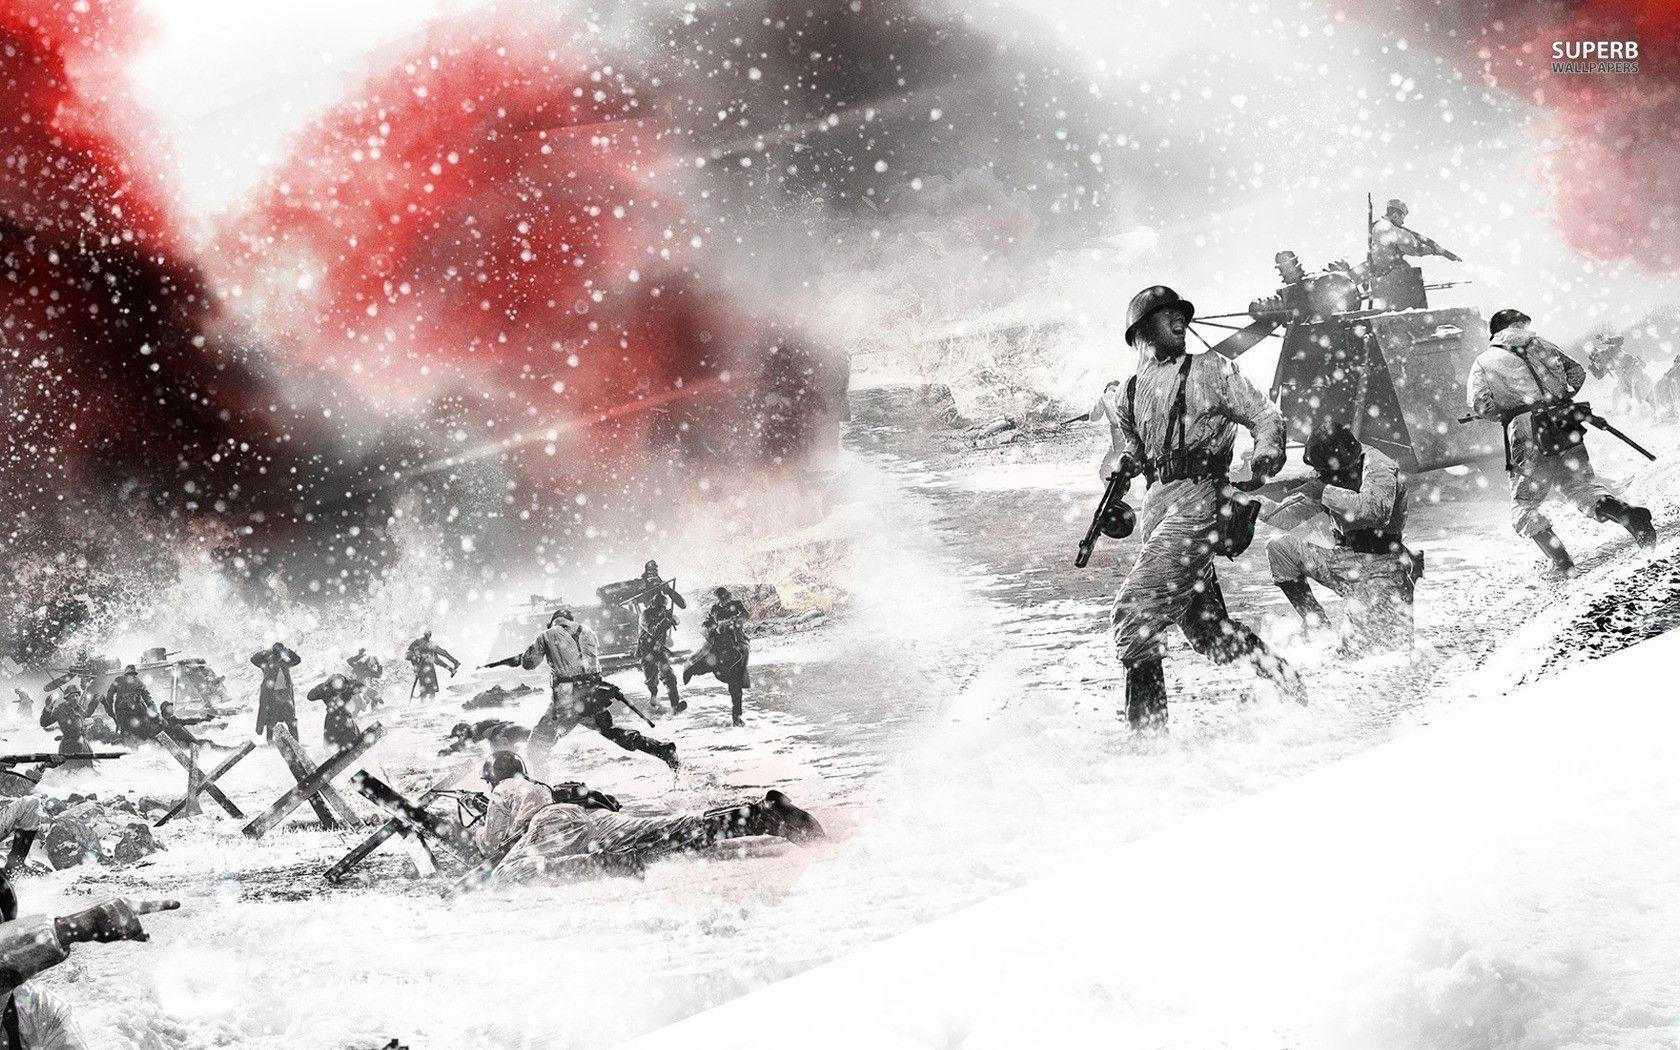 Company of heroes 2 wallpapers wallpaper cave for Wallpaper companies